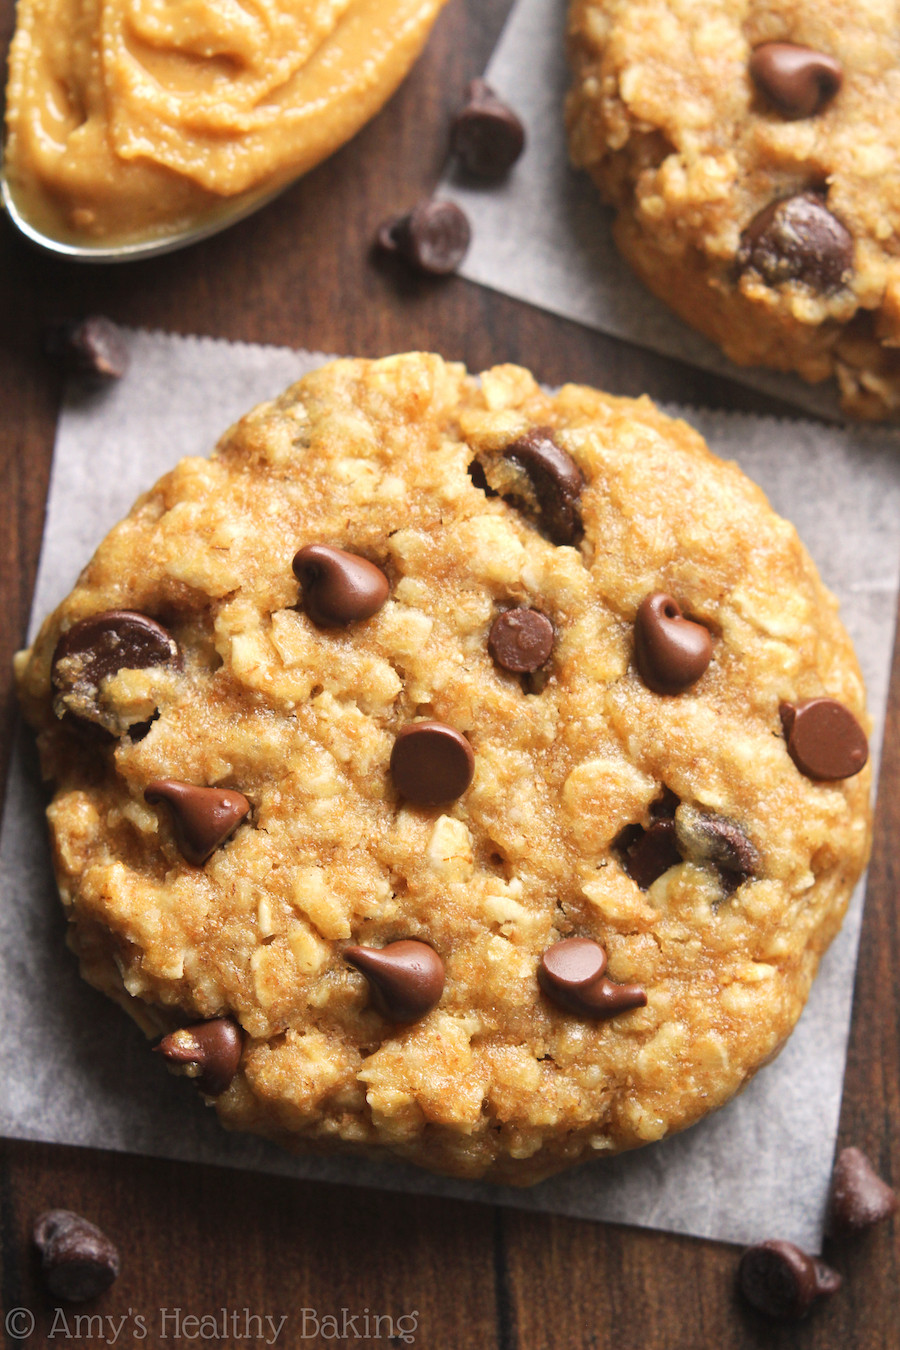 Healthy Oatmeal Peanut Butter Cookies  Chocolate Chip Peanut Butter Oatmeal Cookies Recipe Video